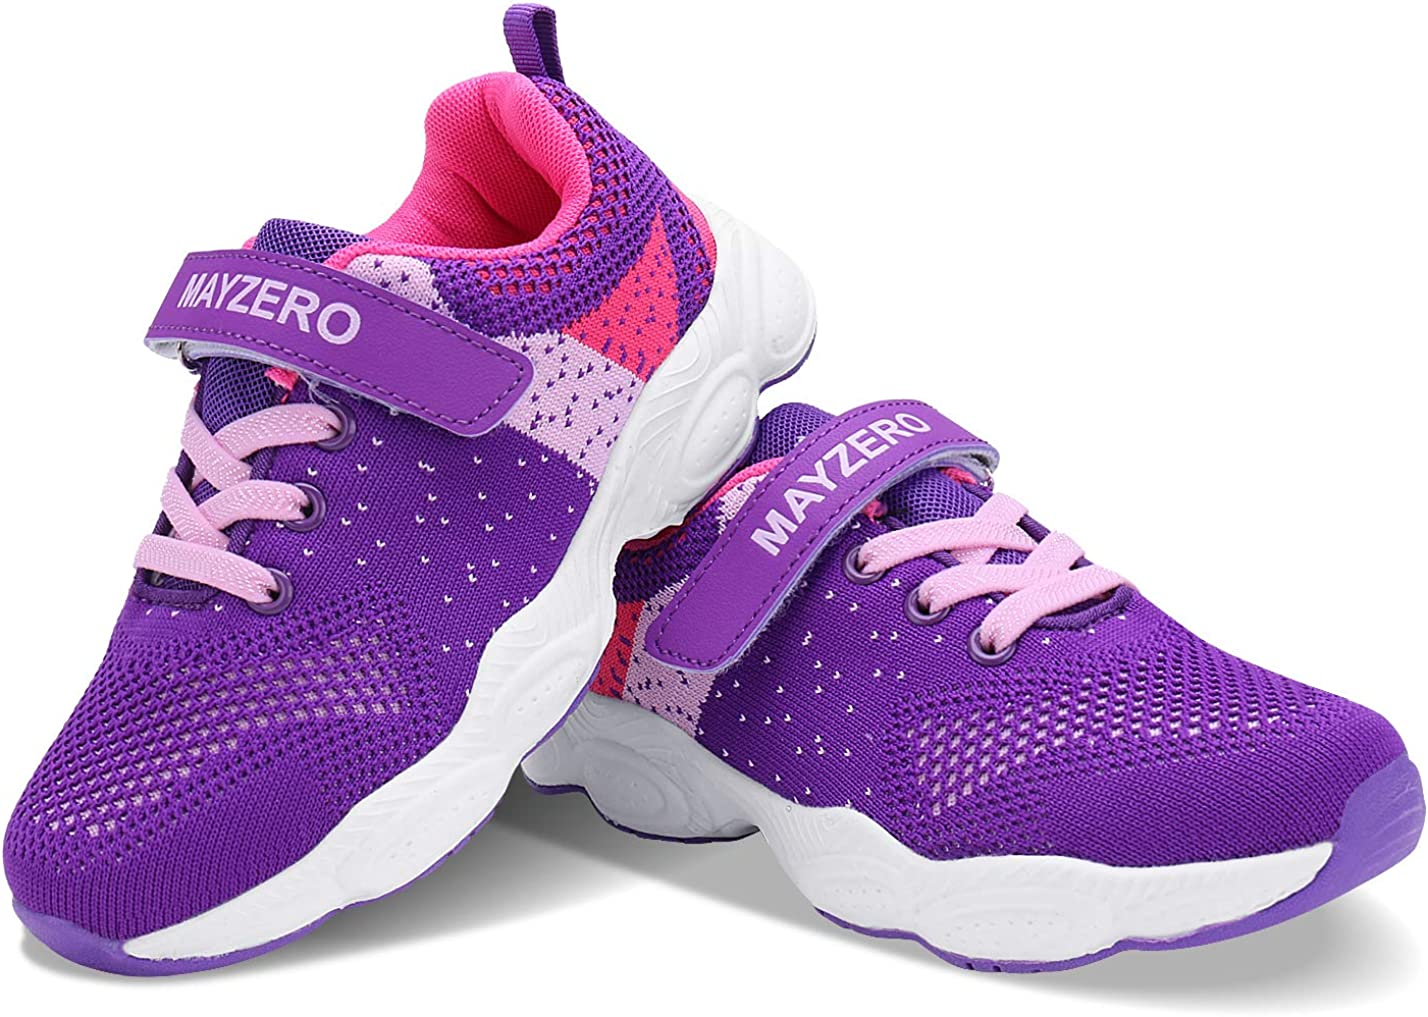 Lingmu Girls Boys Fashionable Running Shoes Kid Breathable Non-Slip Tennis Shoes Outdoor Sports Shoes Childrens Toddler//Little Kid//Big Kid